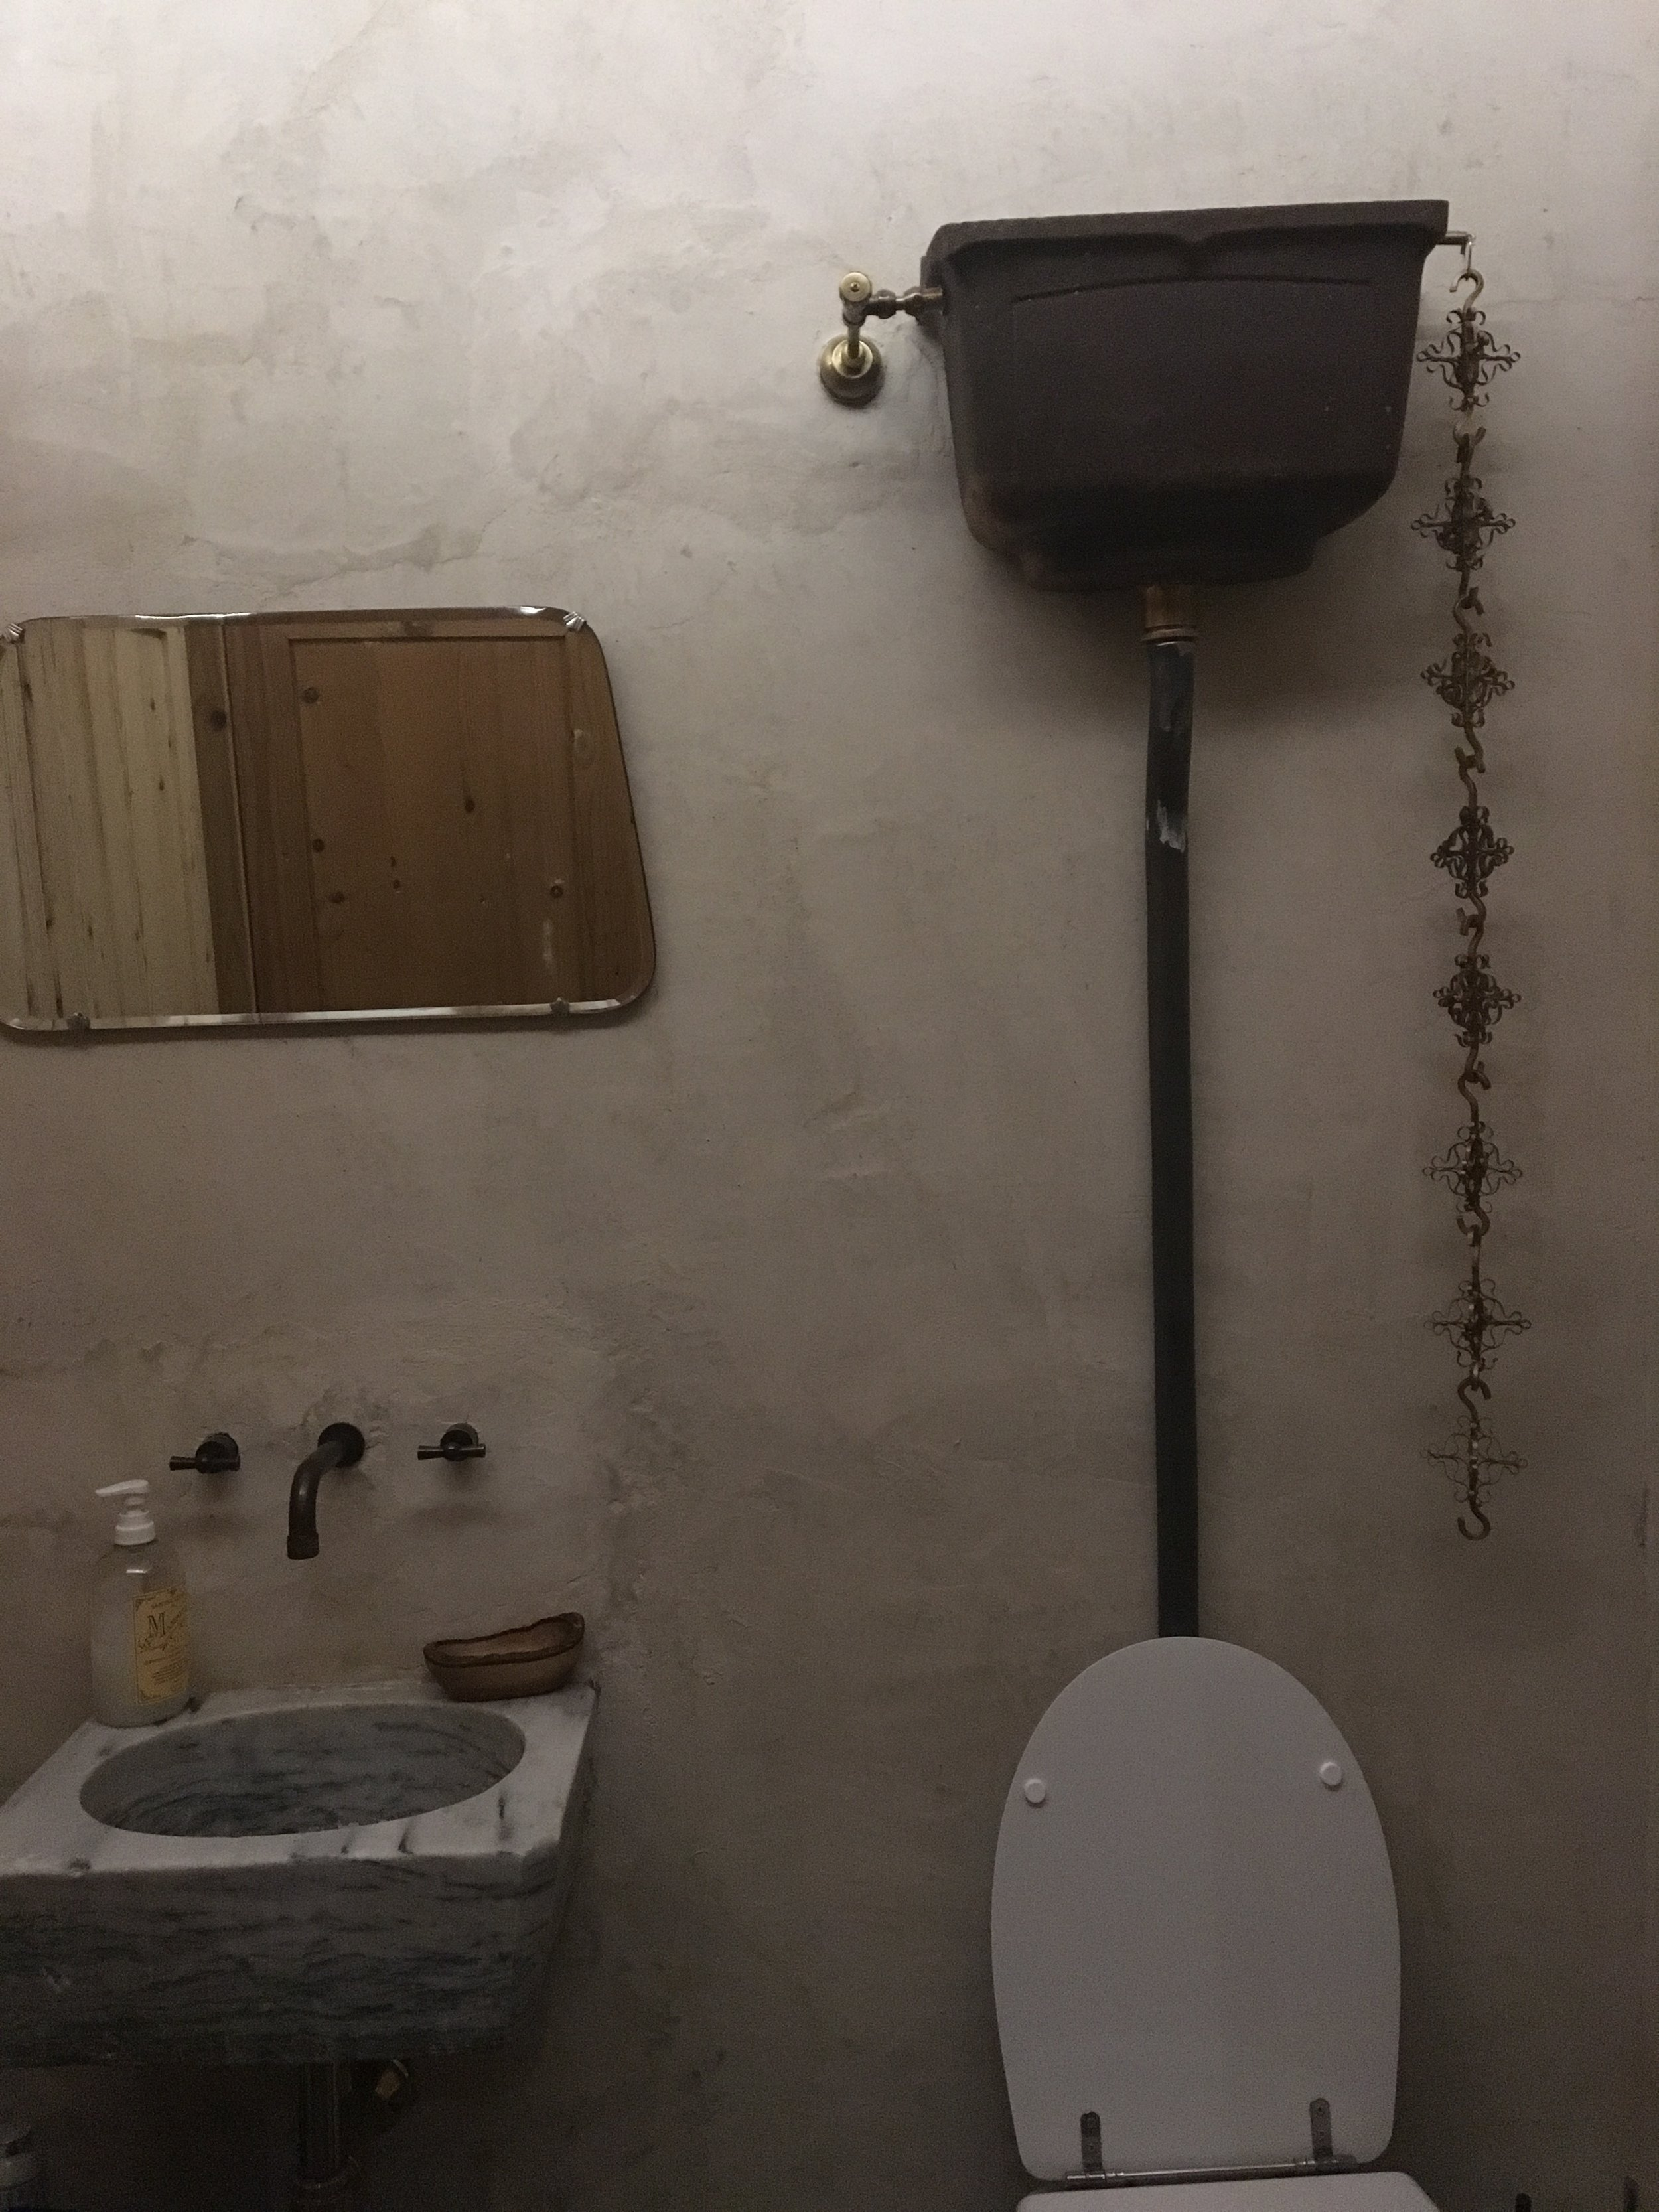 I know it's a bathroom, but by far the best toilet flush and tank I have ever seen!